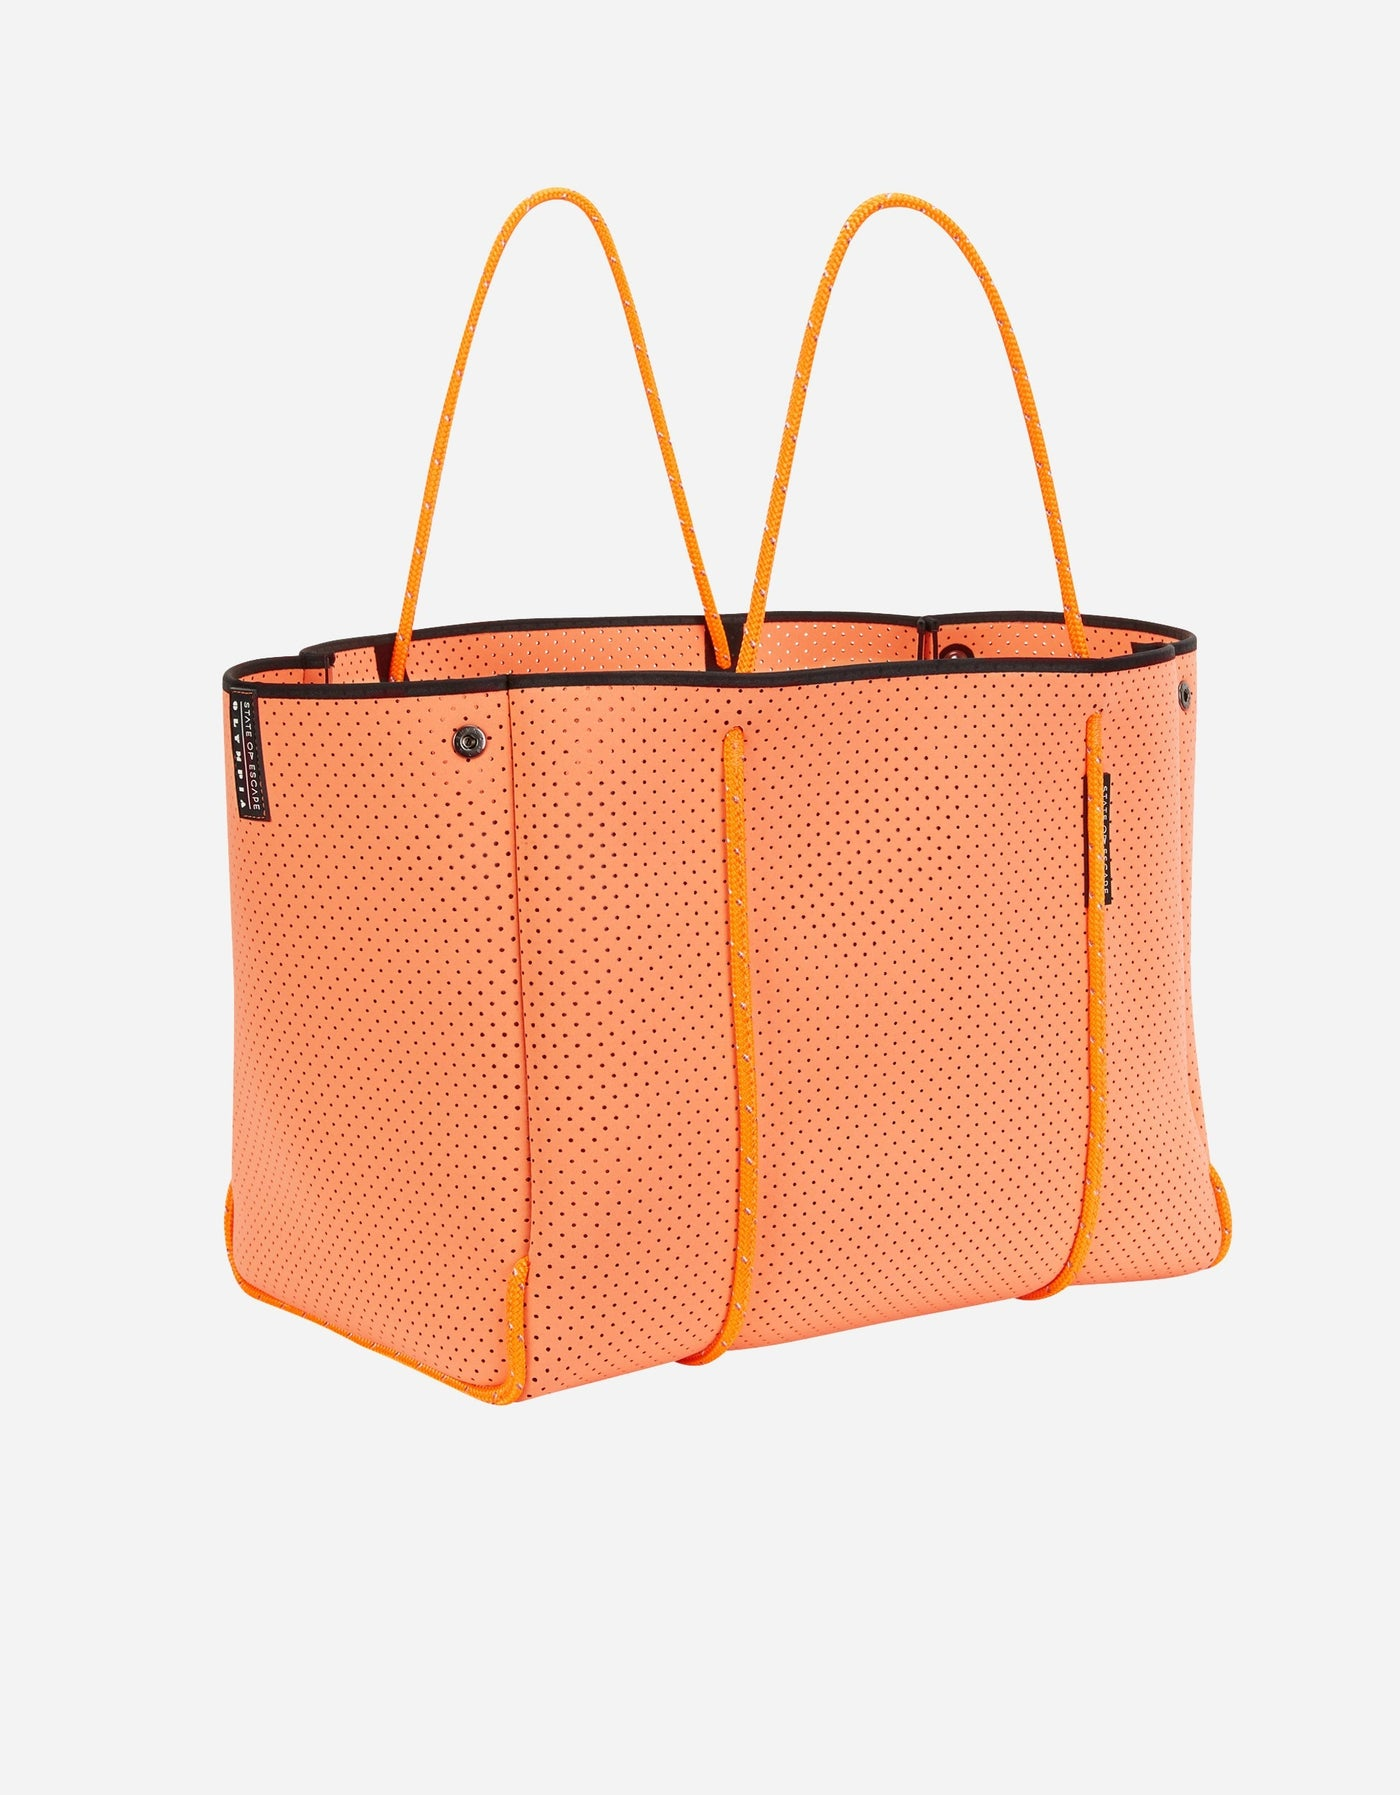 State of Escape x Olympia Escape™ tote in sunset